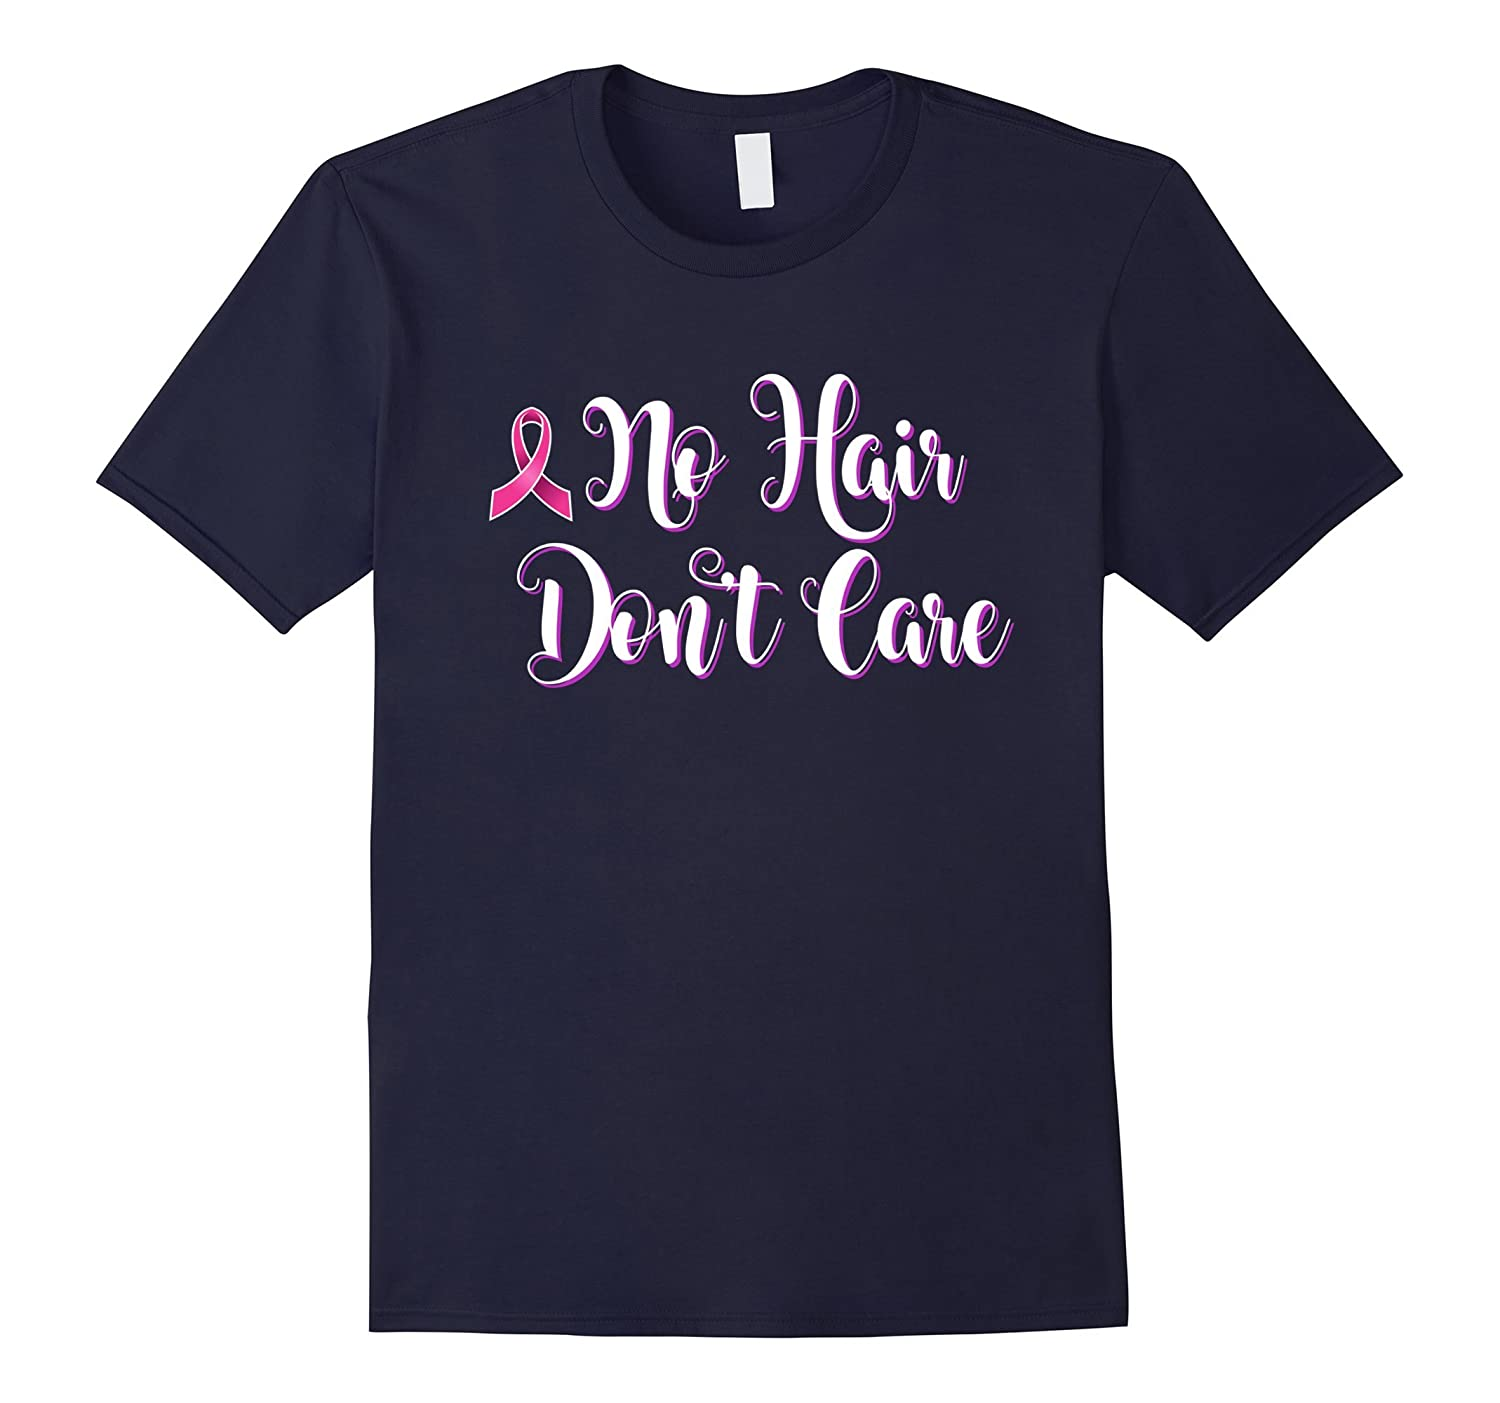 Breast Cancer Awareness T Shirt for Women No Hair Don't Care-FL